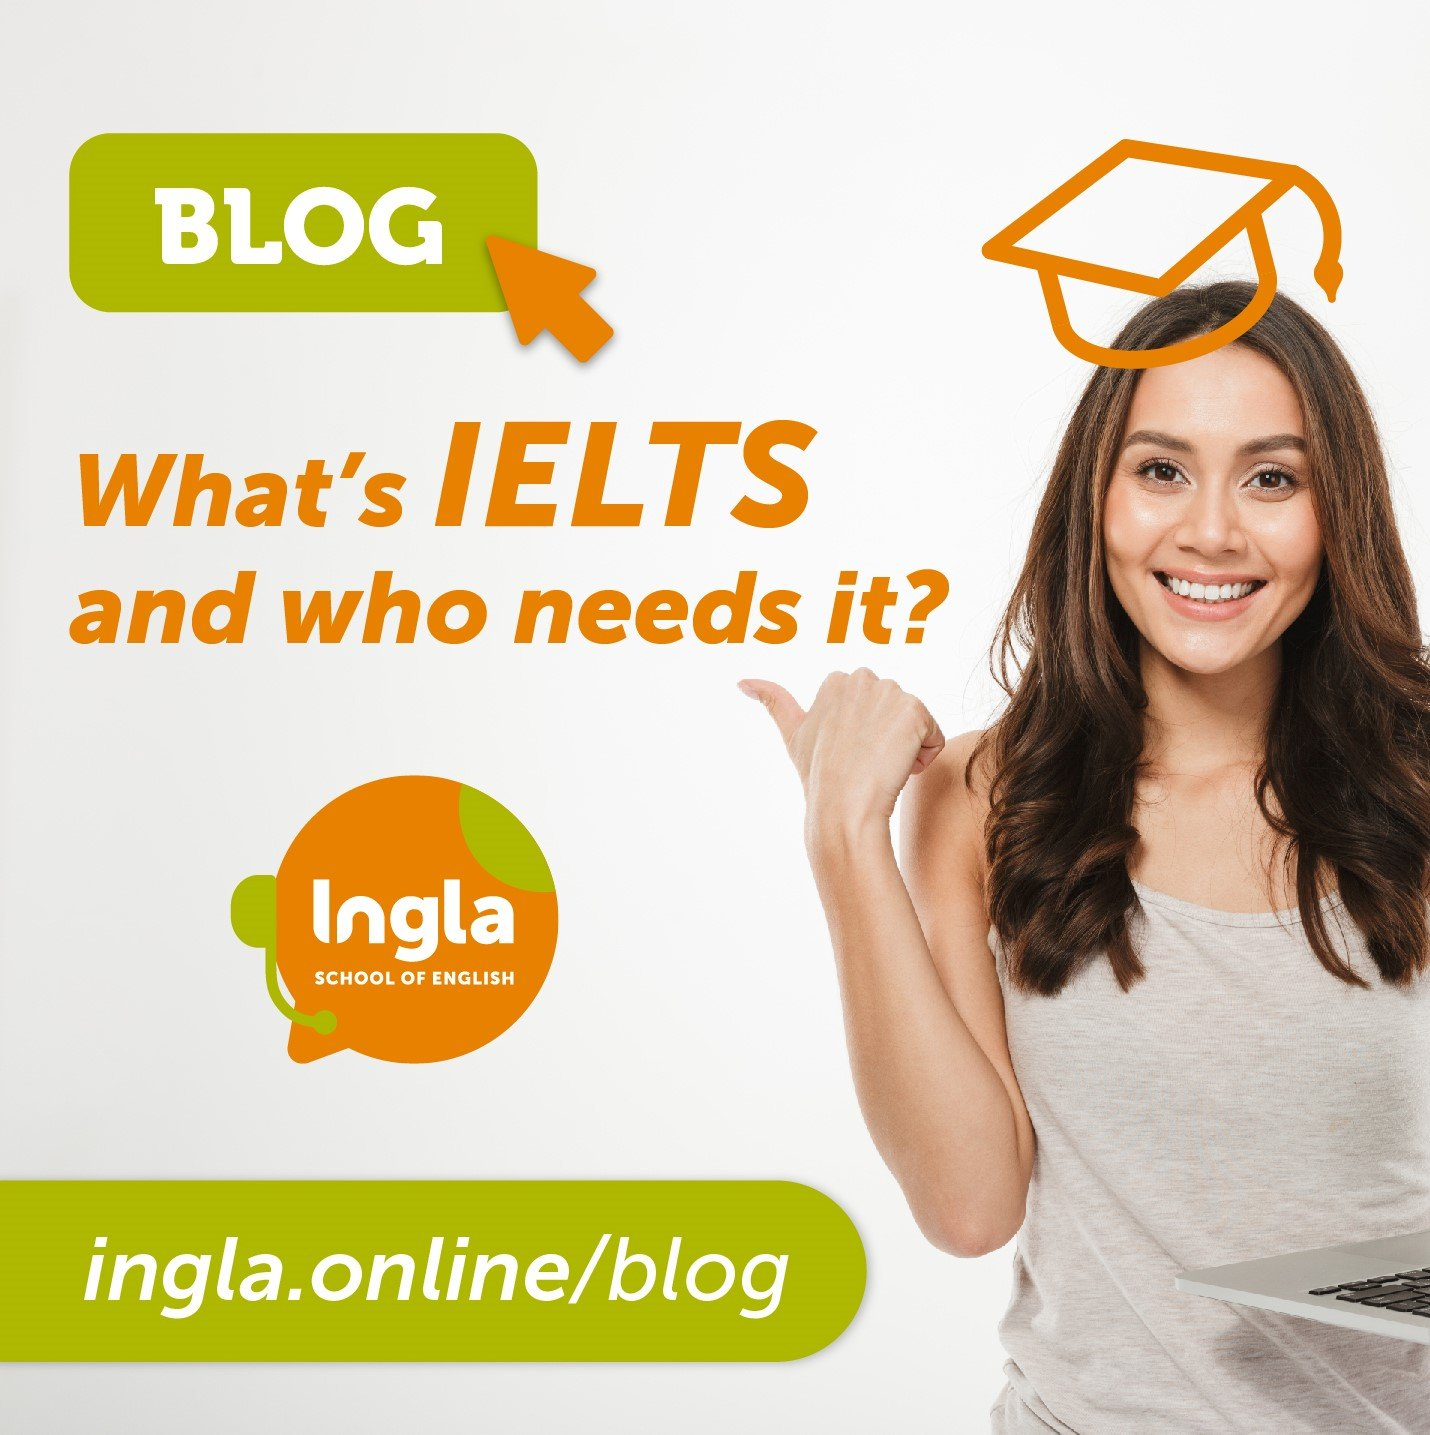 What's IELTS and who needs it?